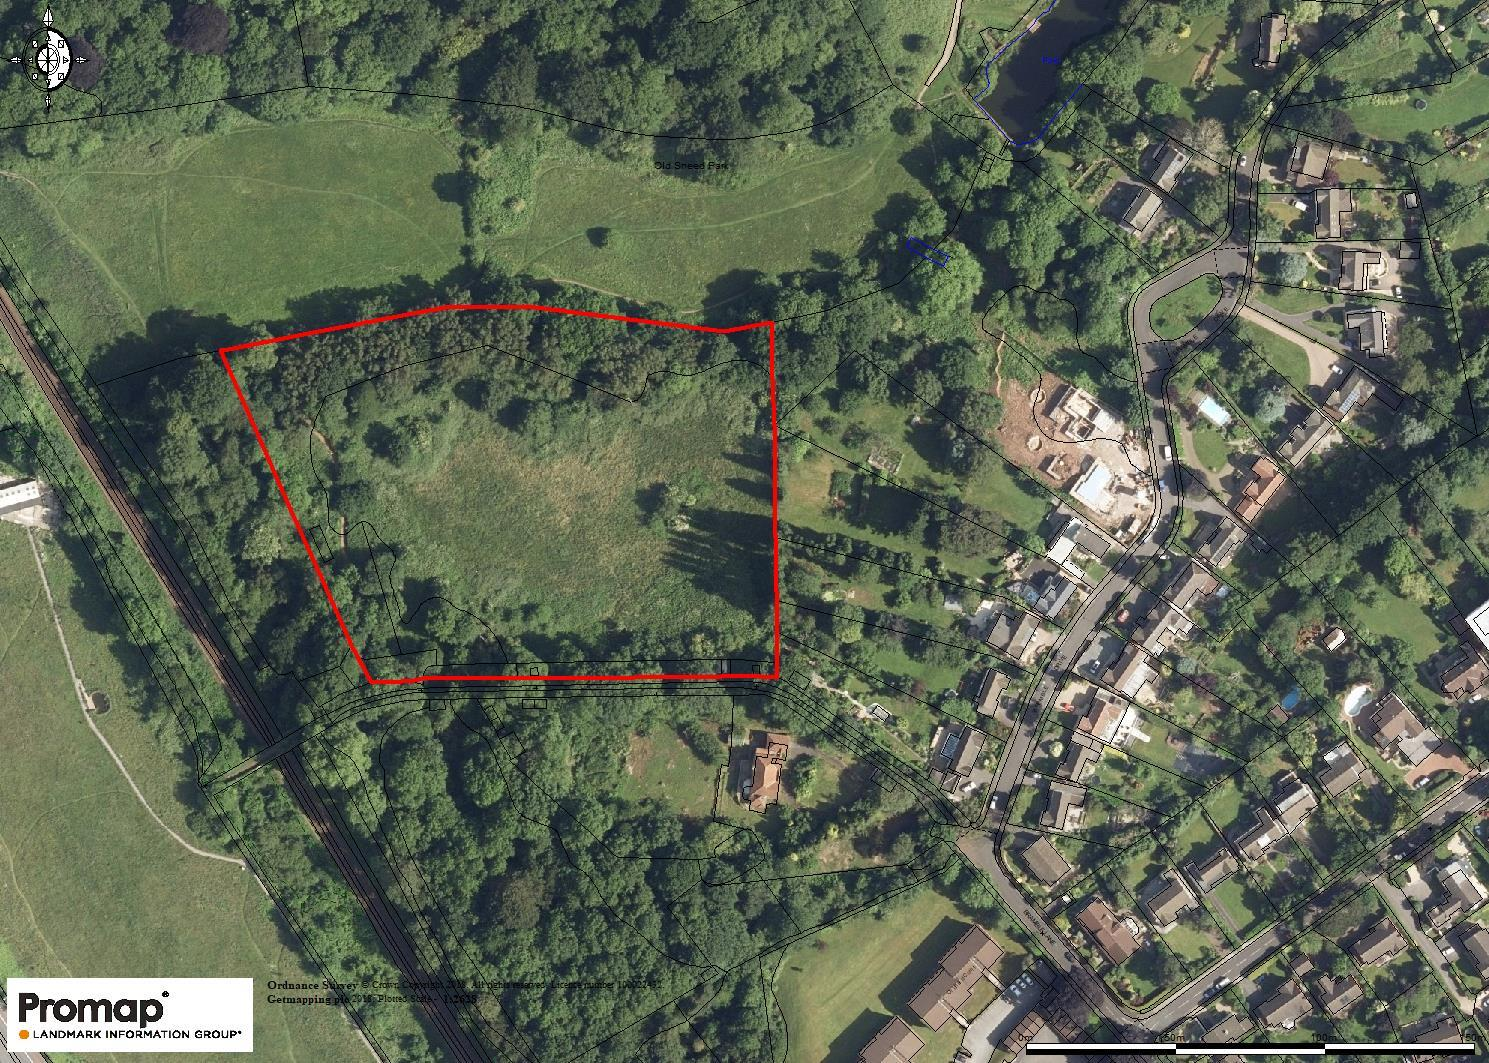 Floorplans For 4.7 ACRES - SNEYD PARK